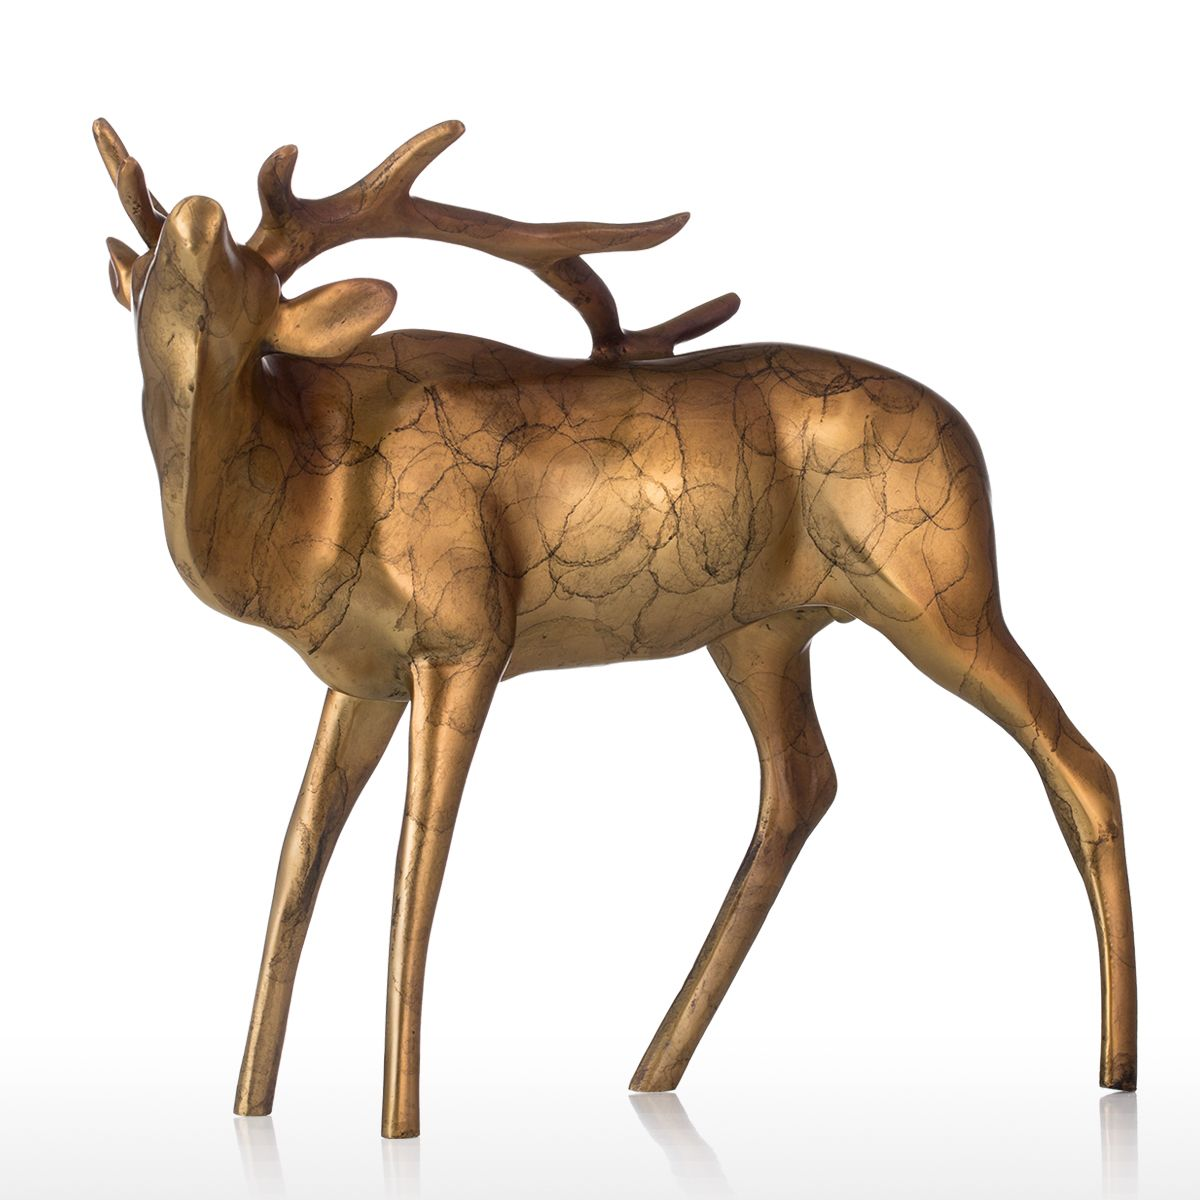 Or cuivre Buck Bronze Sculpture apparence brillante Animal Buck table pour ornements de maison